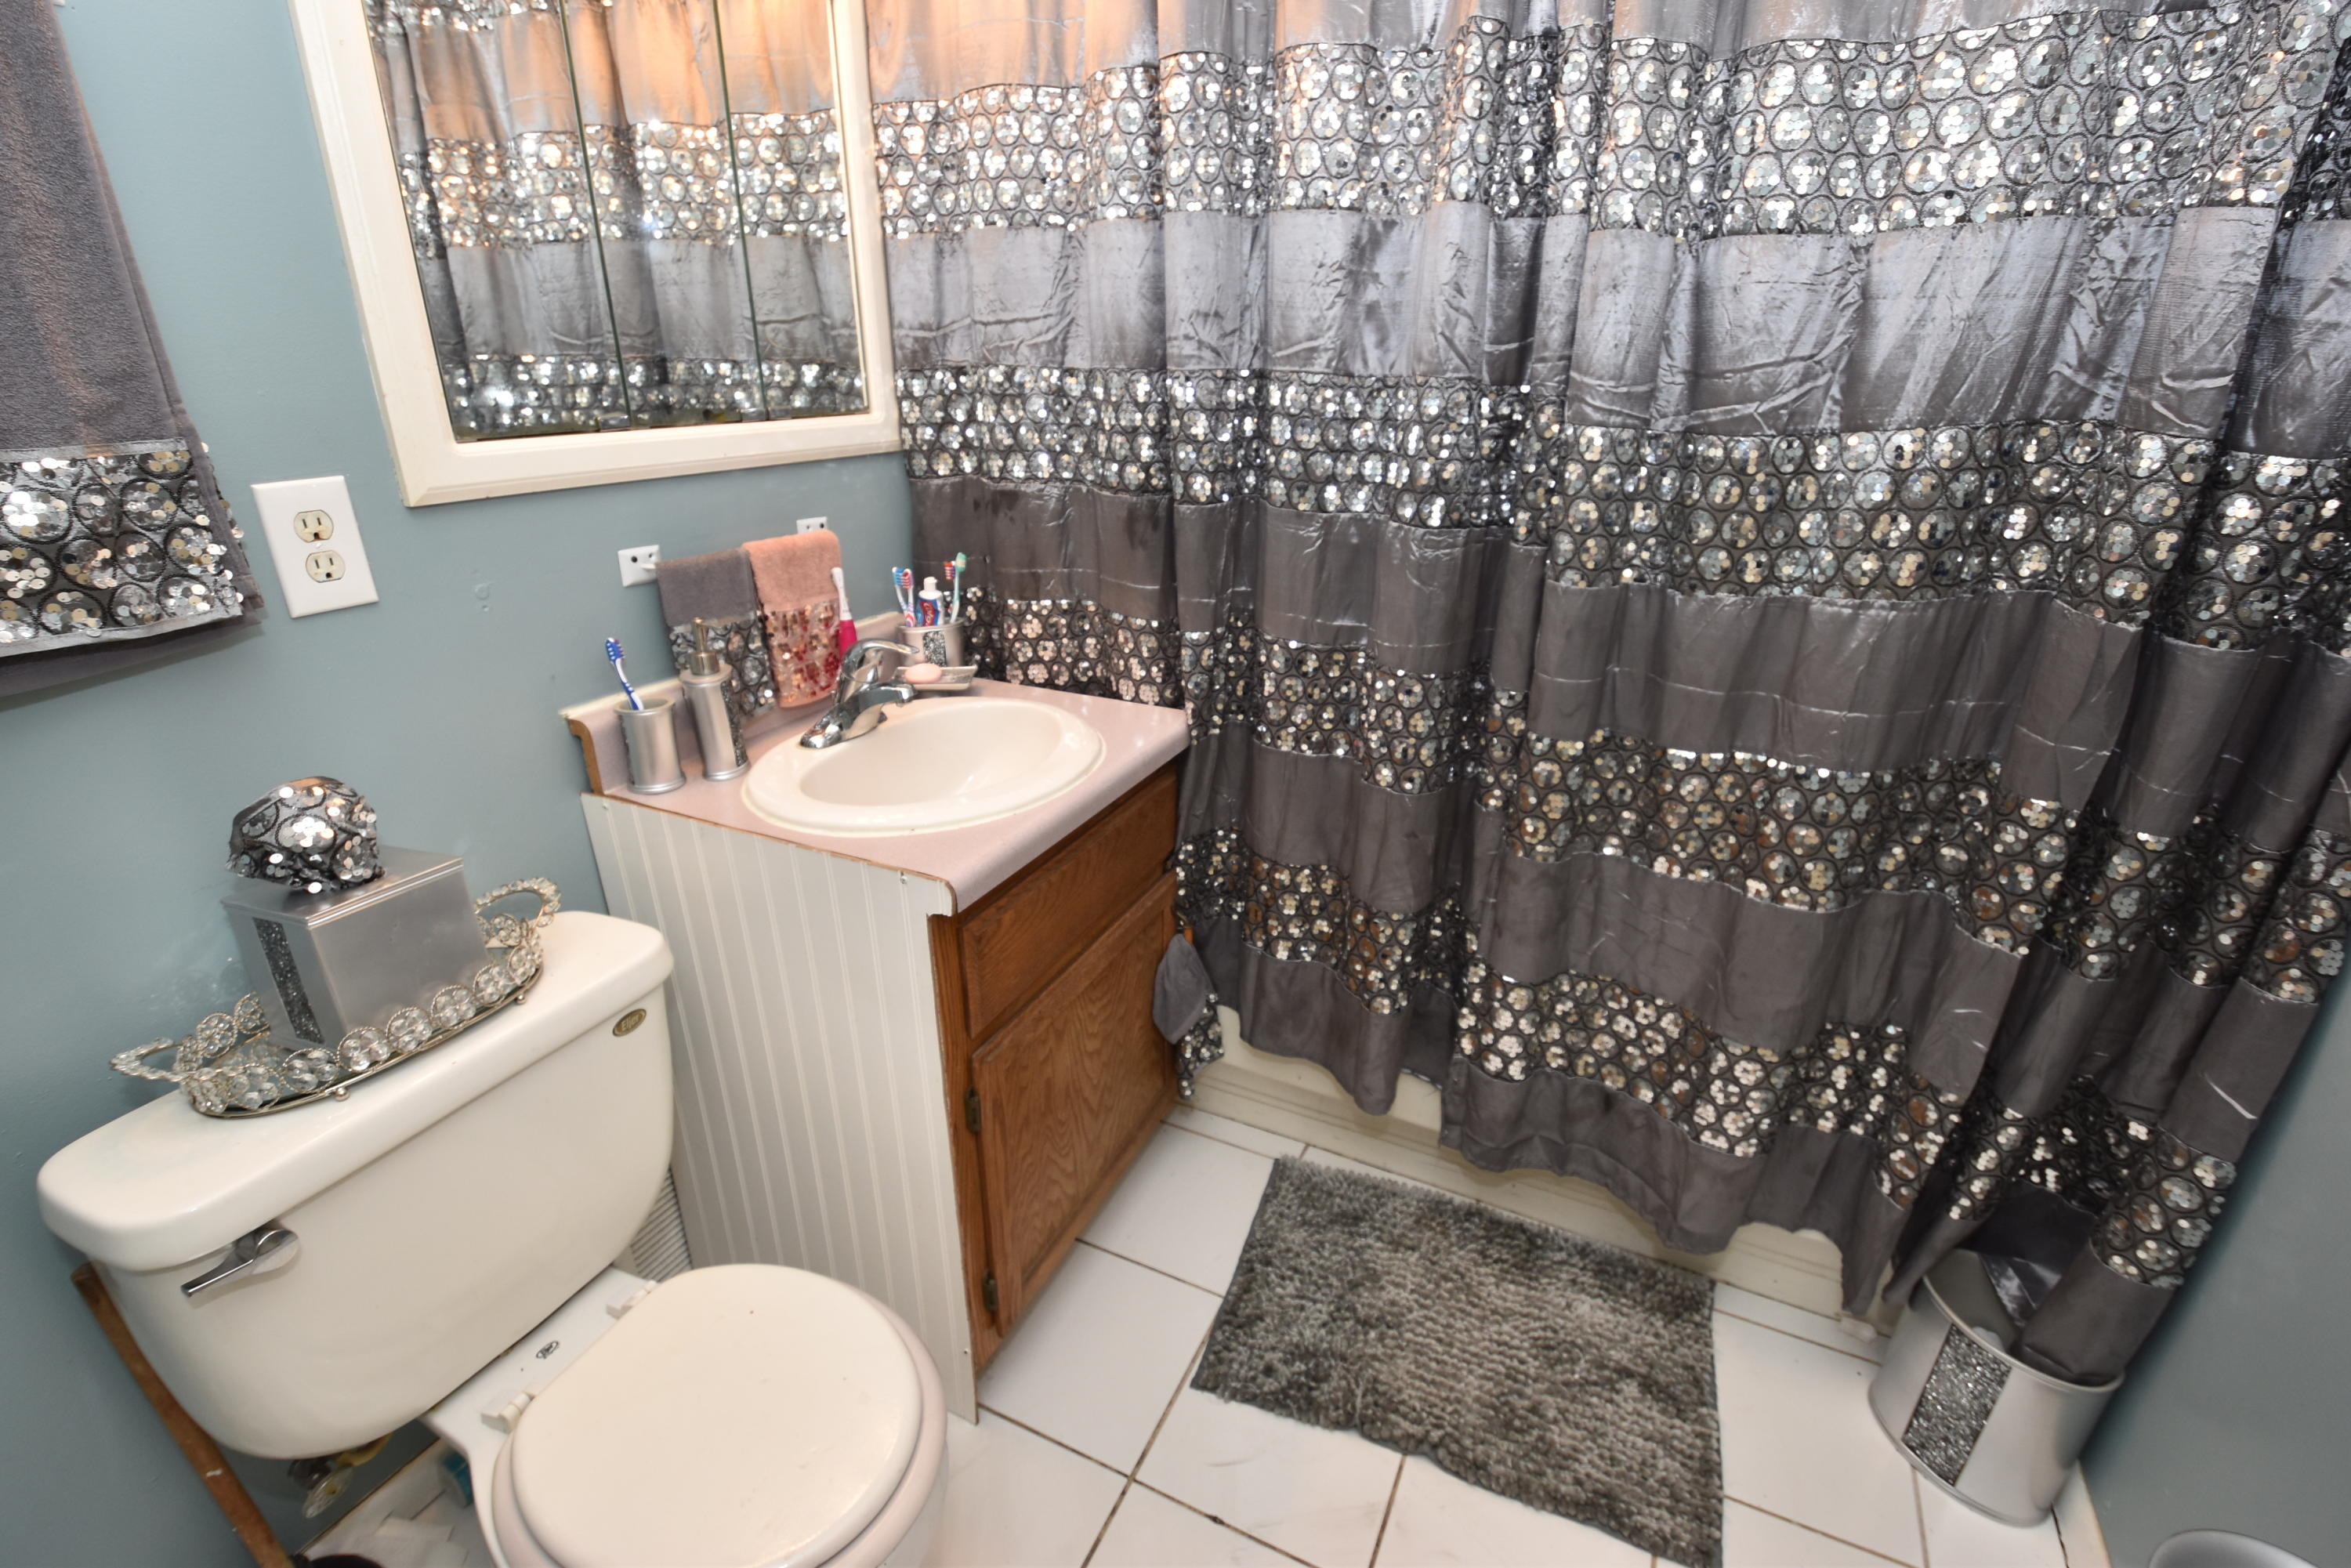 703 Chicago St, Racine, Wisconsin 53405, 2 Bedrooms Bedrooms, 5 Rooms Rooms,1 BathroomBathrooms,Two-Family,For Sale,Chicago St,1,1715563